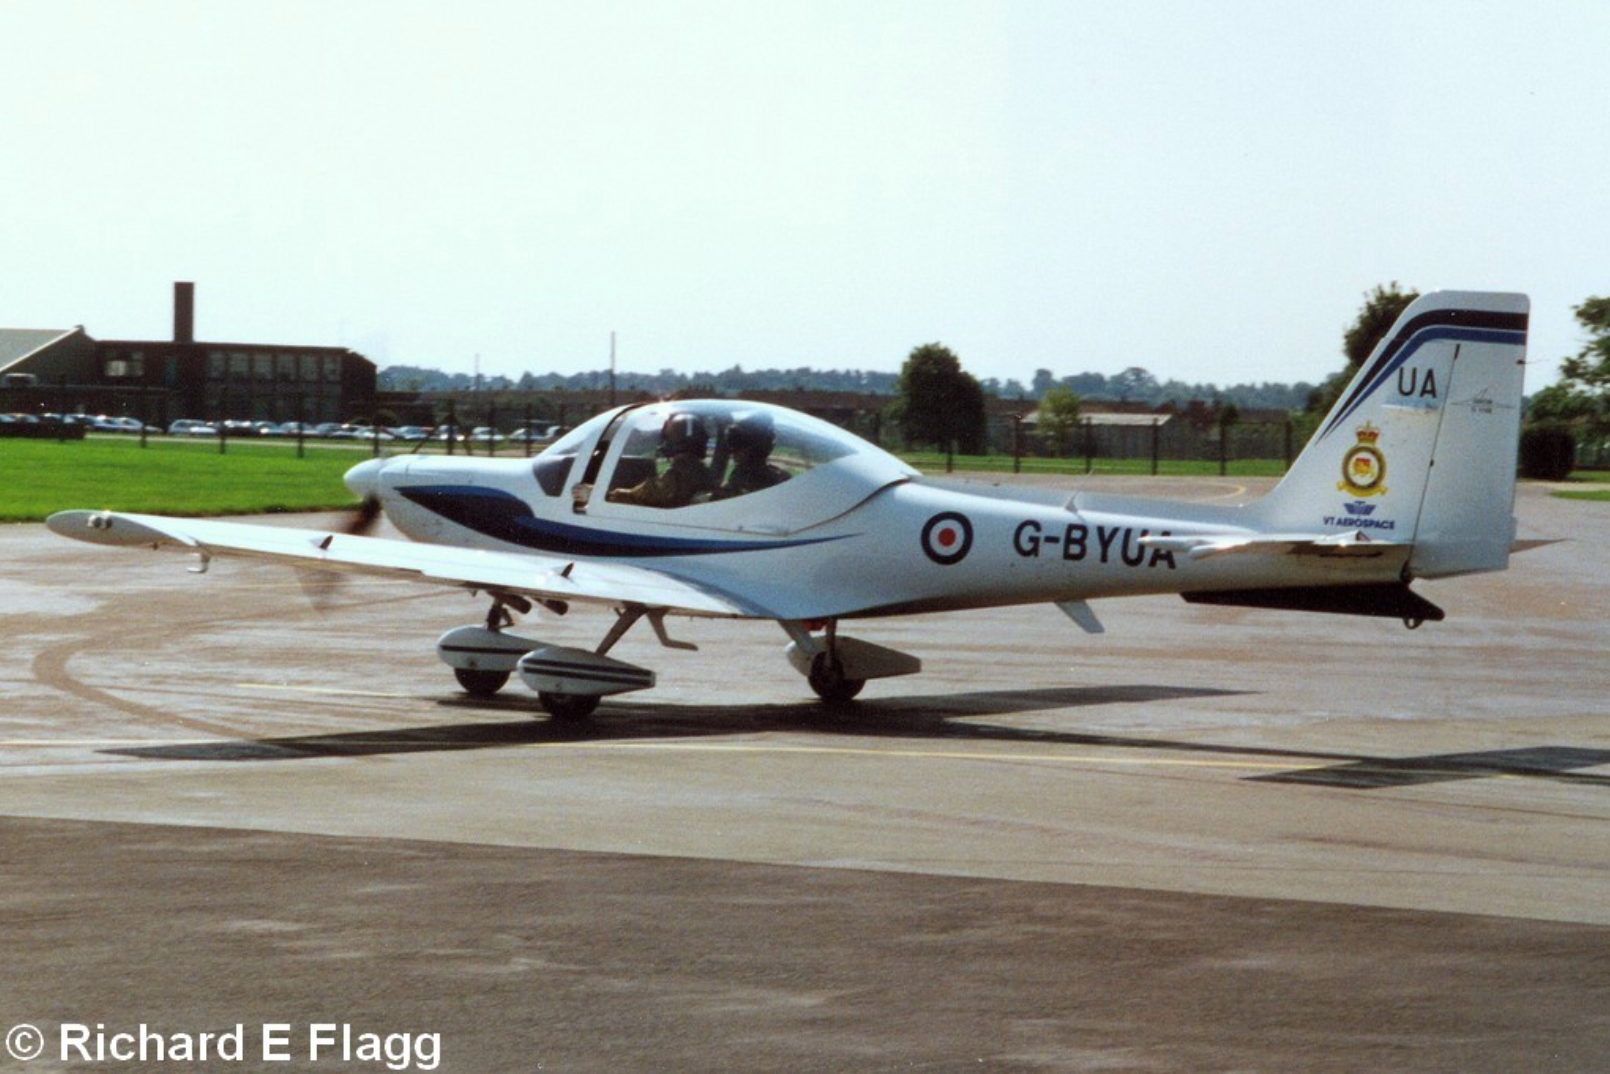 003Grob G-115E Tutor (G-BYUA) - 15 August 2001.png